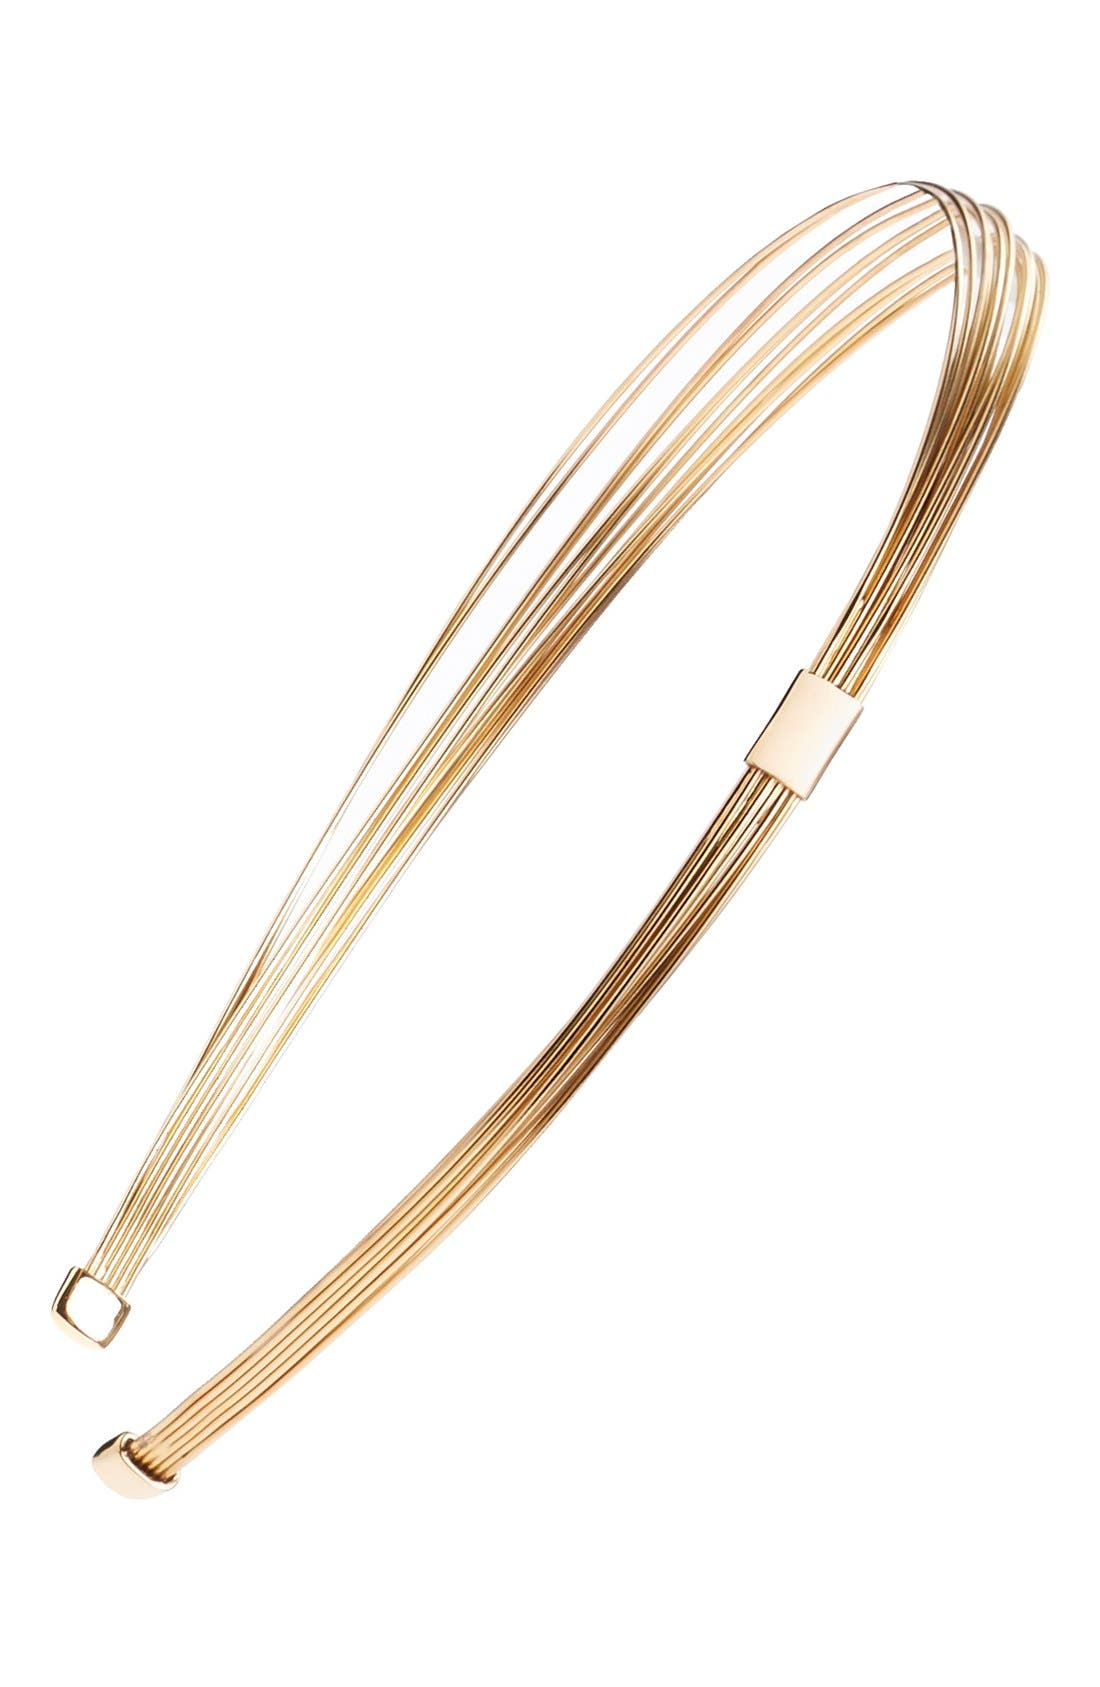 Main Image - Mrs President & Co 'The Lady' Wire Headband